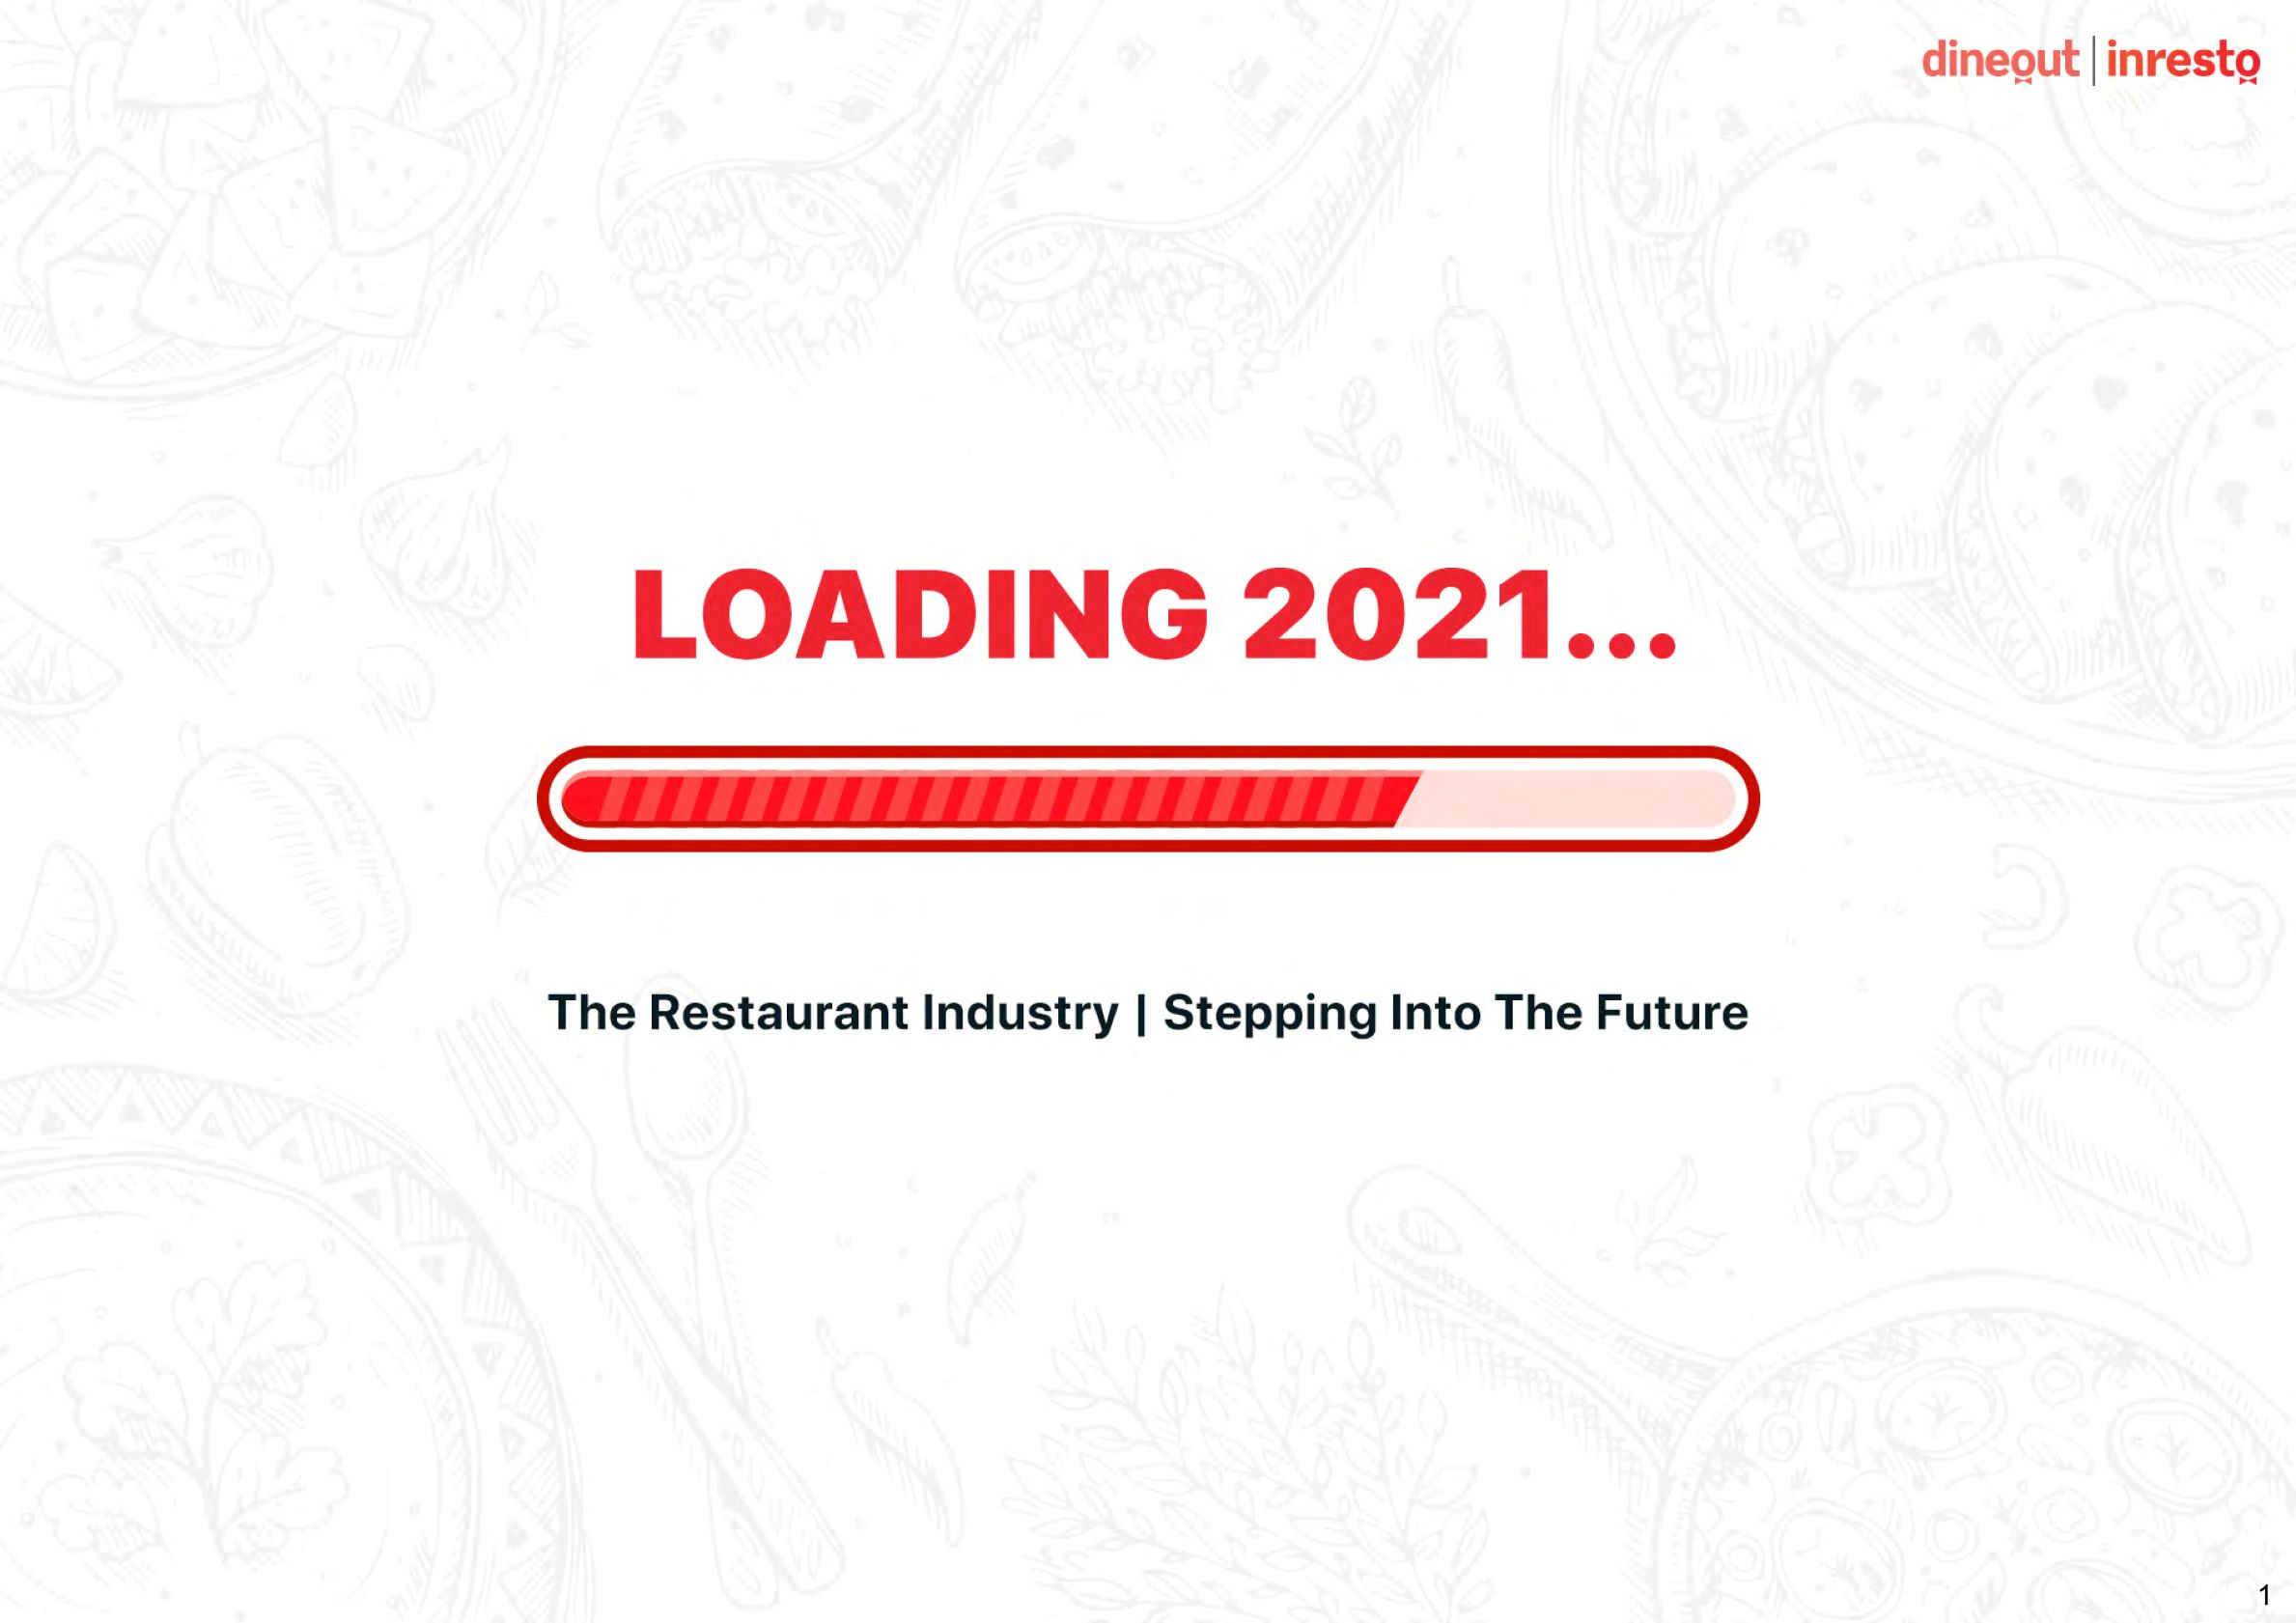 Loading 2021: What the future holds for the restaurant industry?